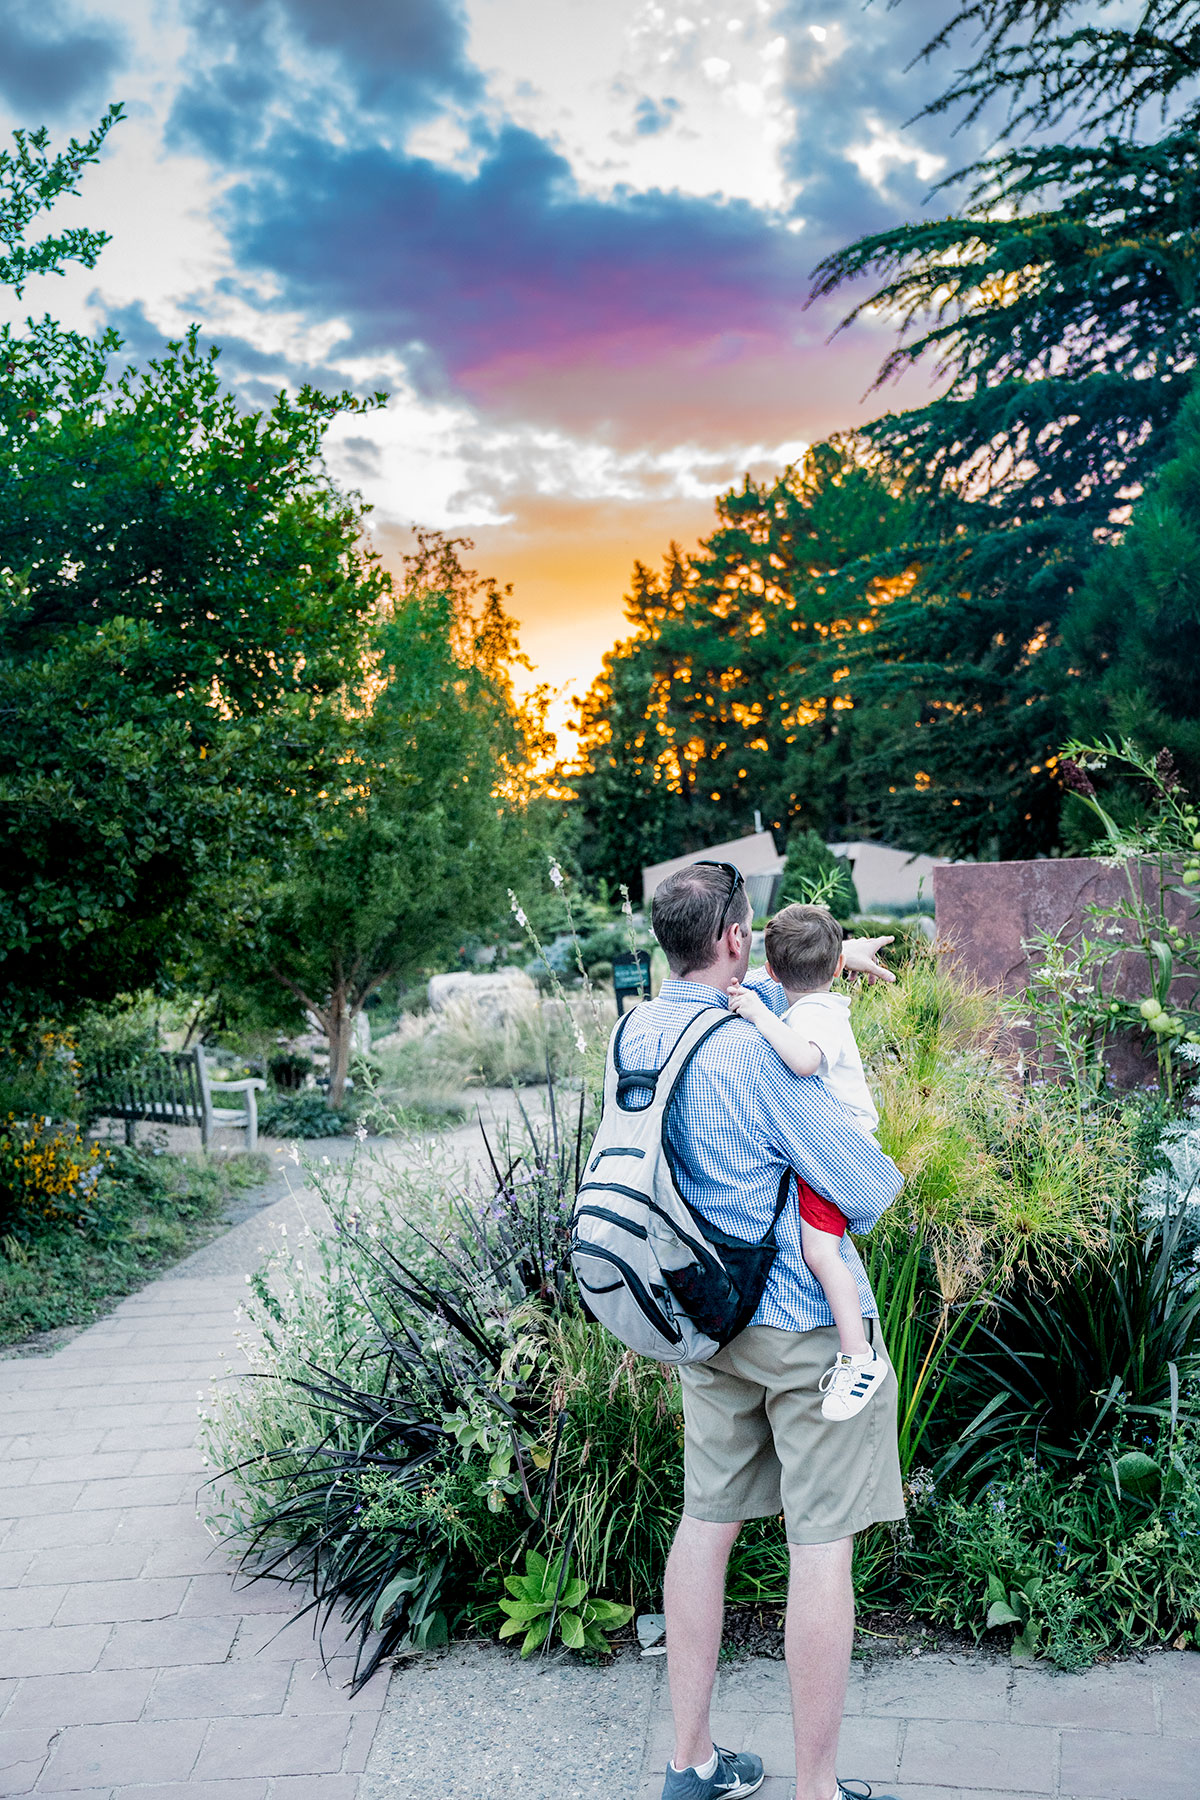 Sunset-at-Denver-Botanic-Gardens